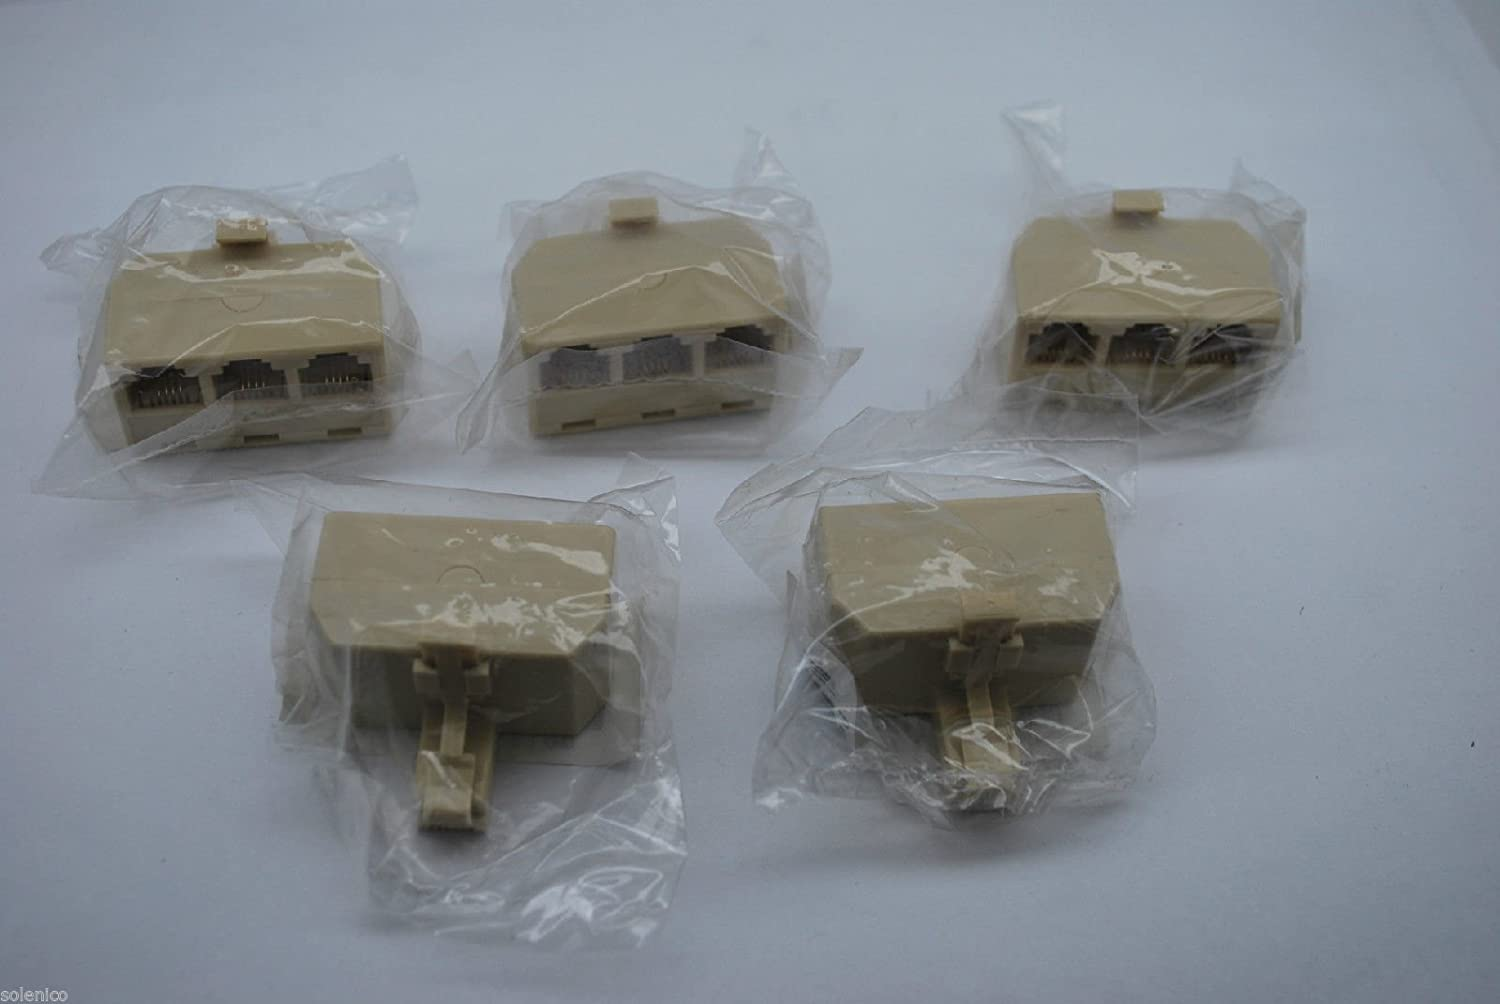 FYL LOT OF 5 TELEPHONE 3 WAY ADAPTER OR JACK TRIPLE ADAPTER RJ11 IVORY